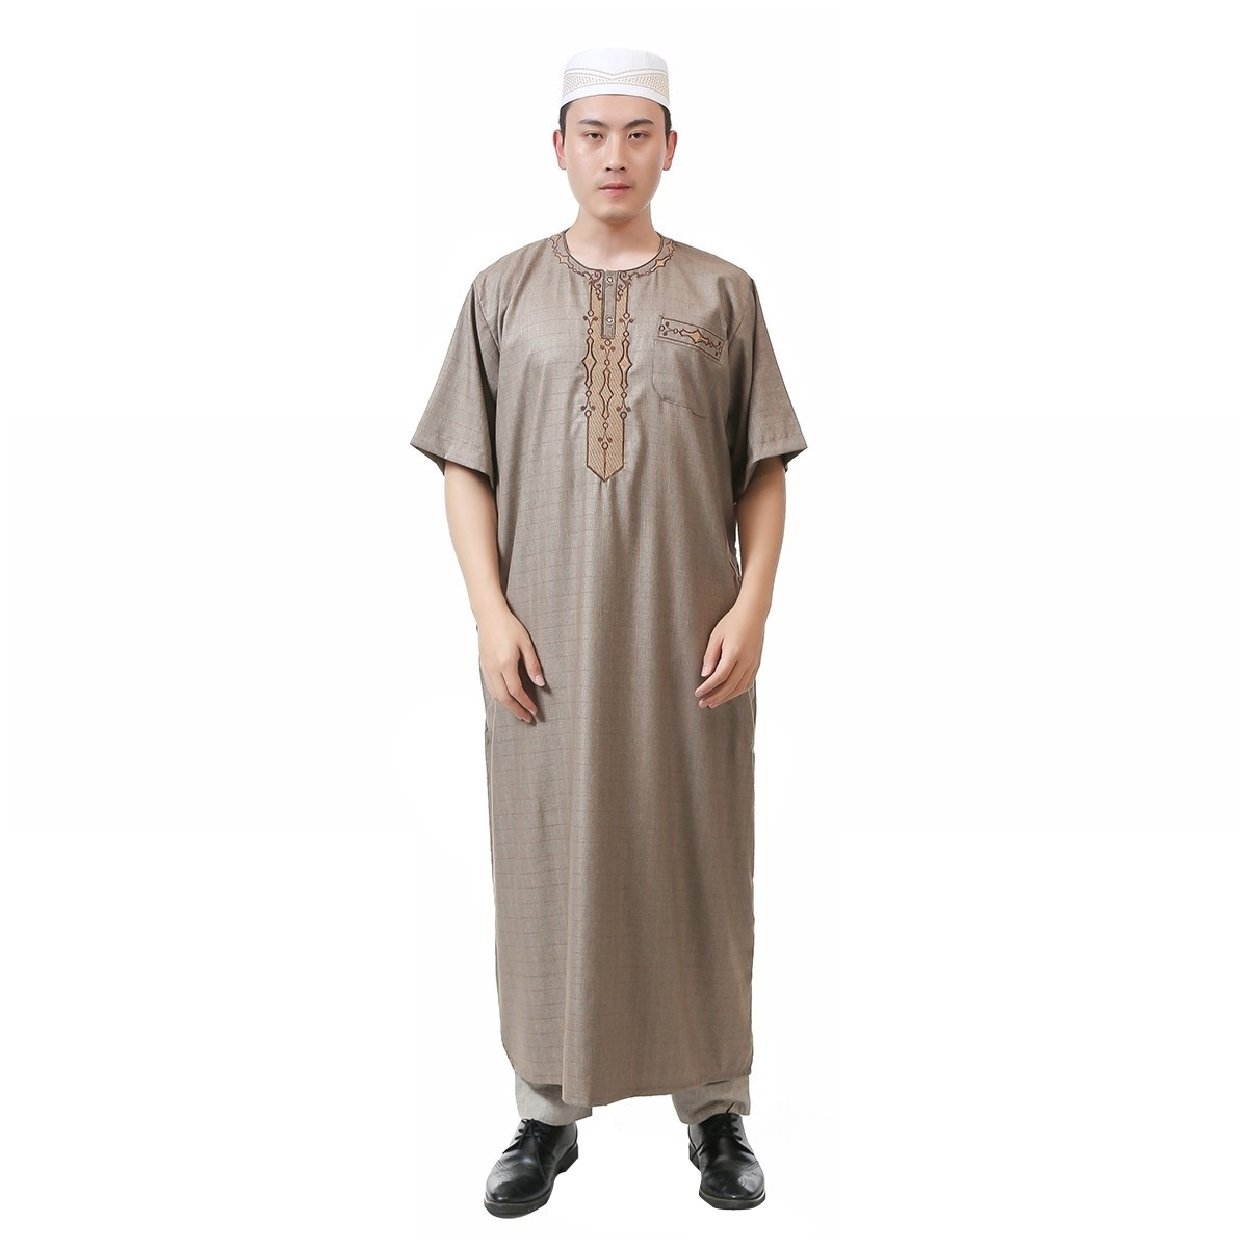 Tootless Mens Embroidered Short Sleeve Islamic Summer Arab Muslim Thobe Khaki 56